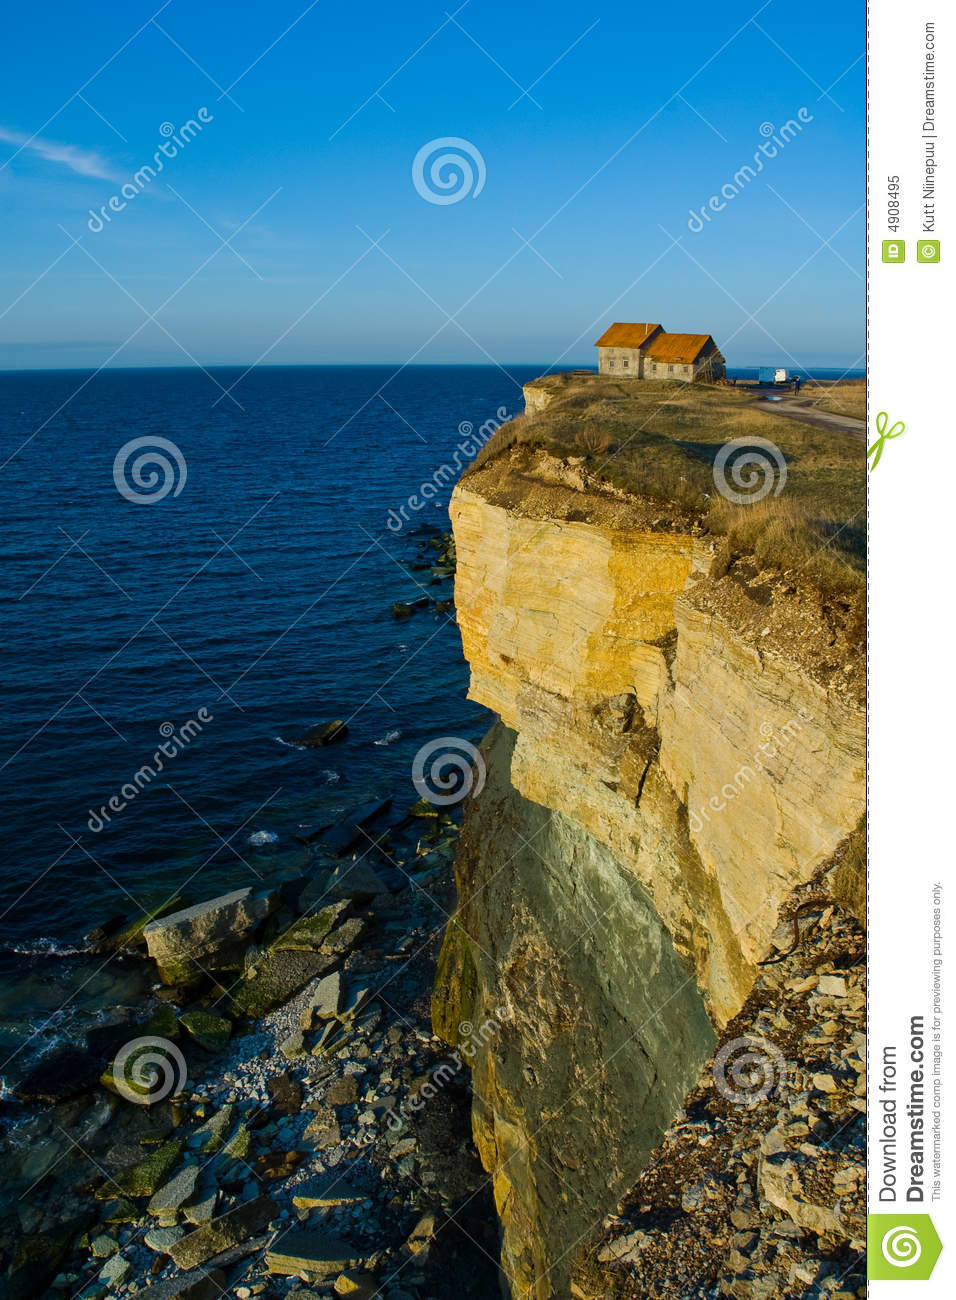 house on cliff edge stock image  image of ocean  dwelling